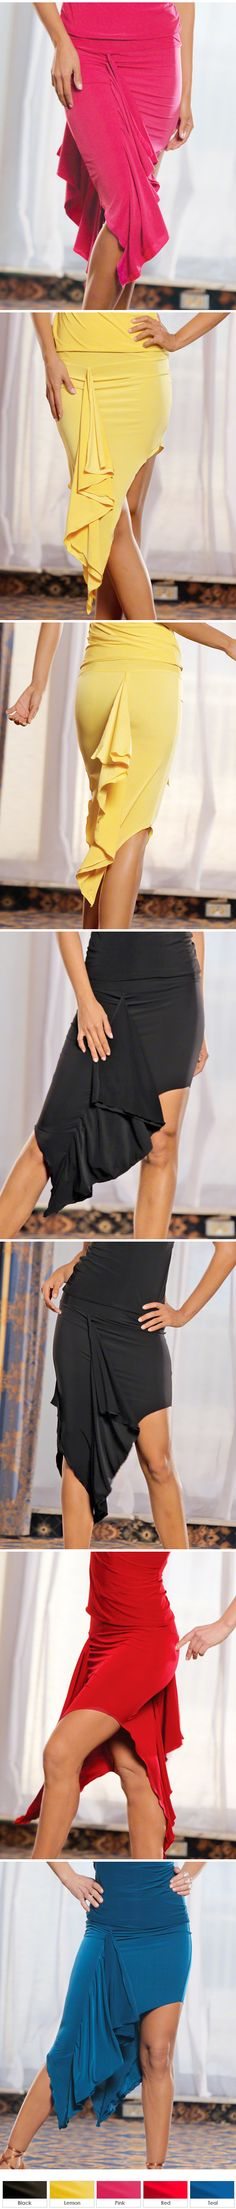 Dance America S312 - Flounced Pencil Latin Skirt